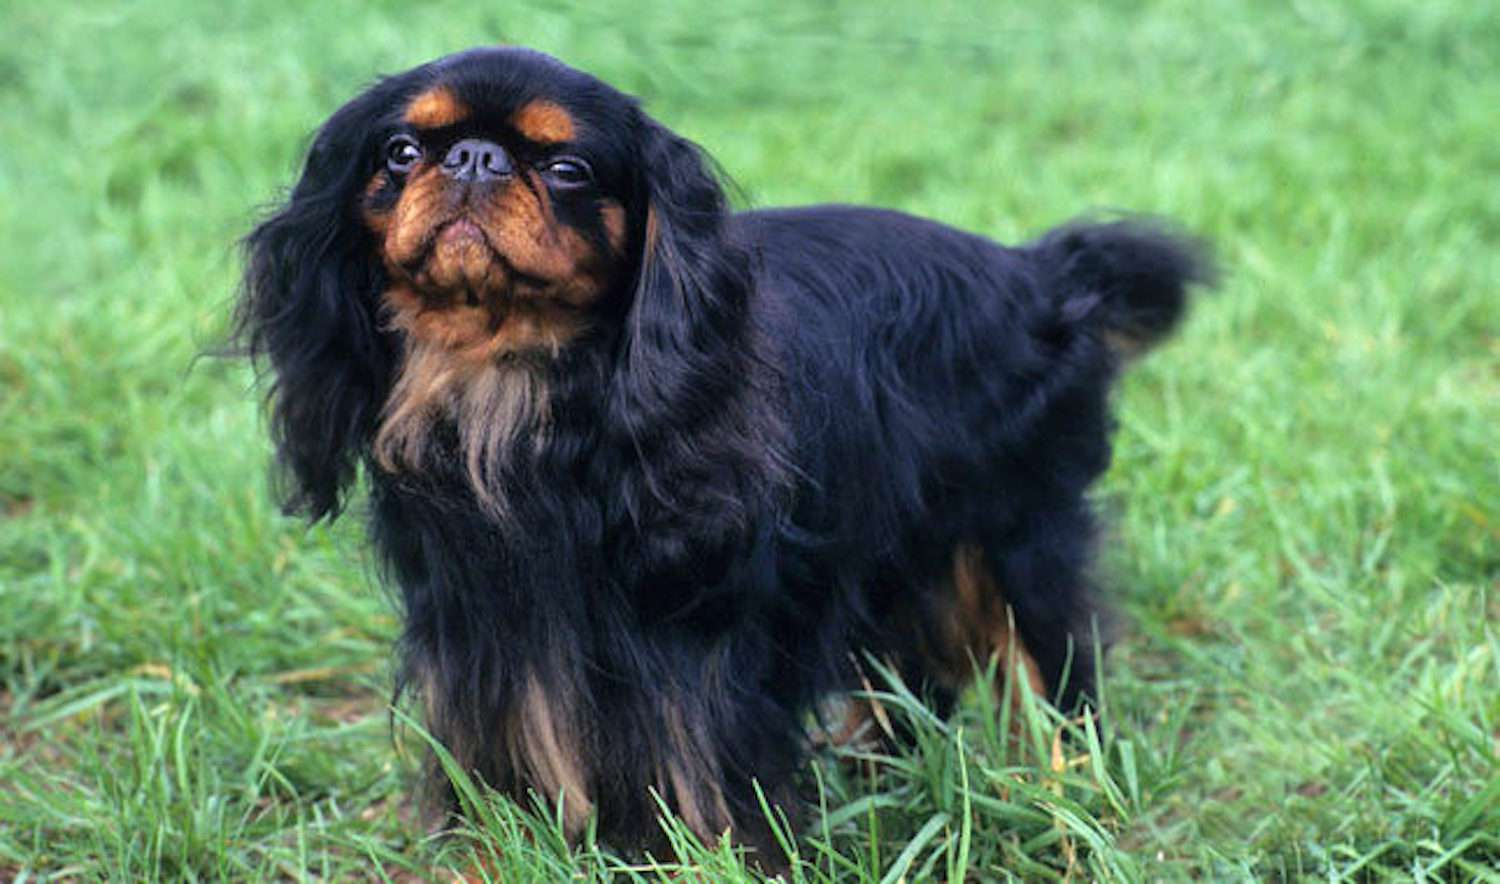 black English toy spaniel with a brown face standing in green grass